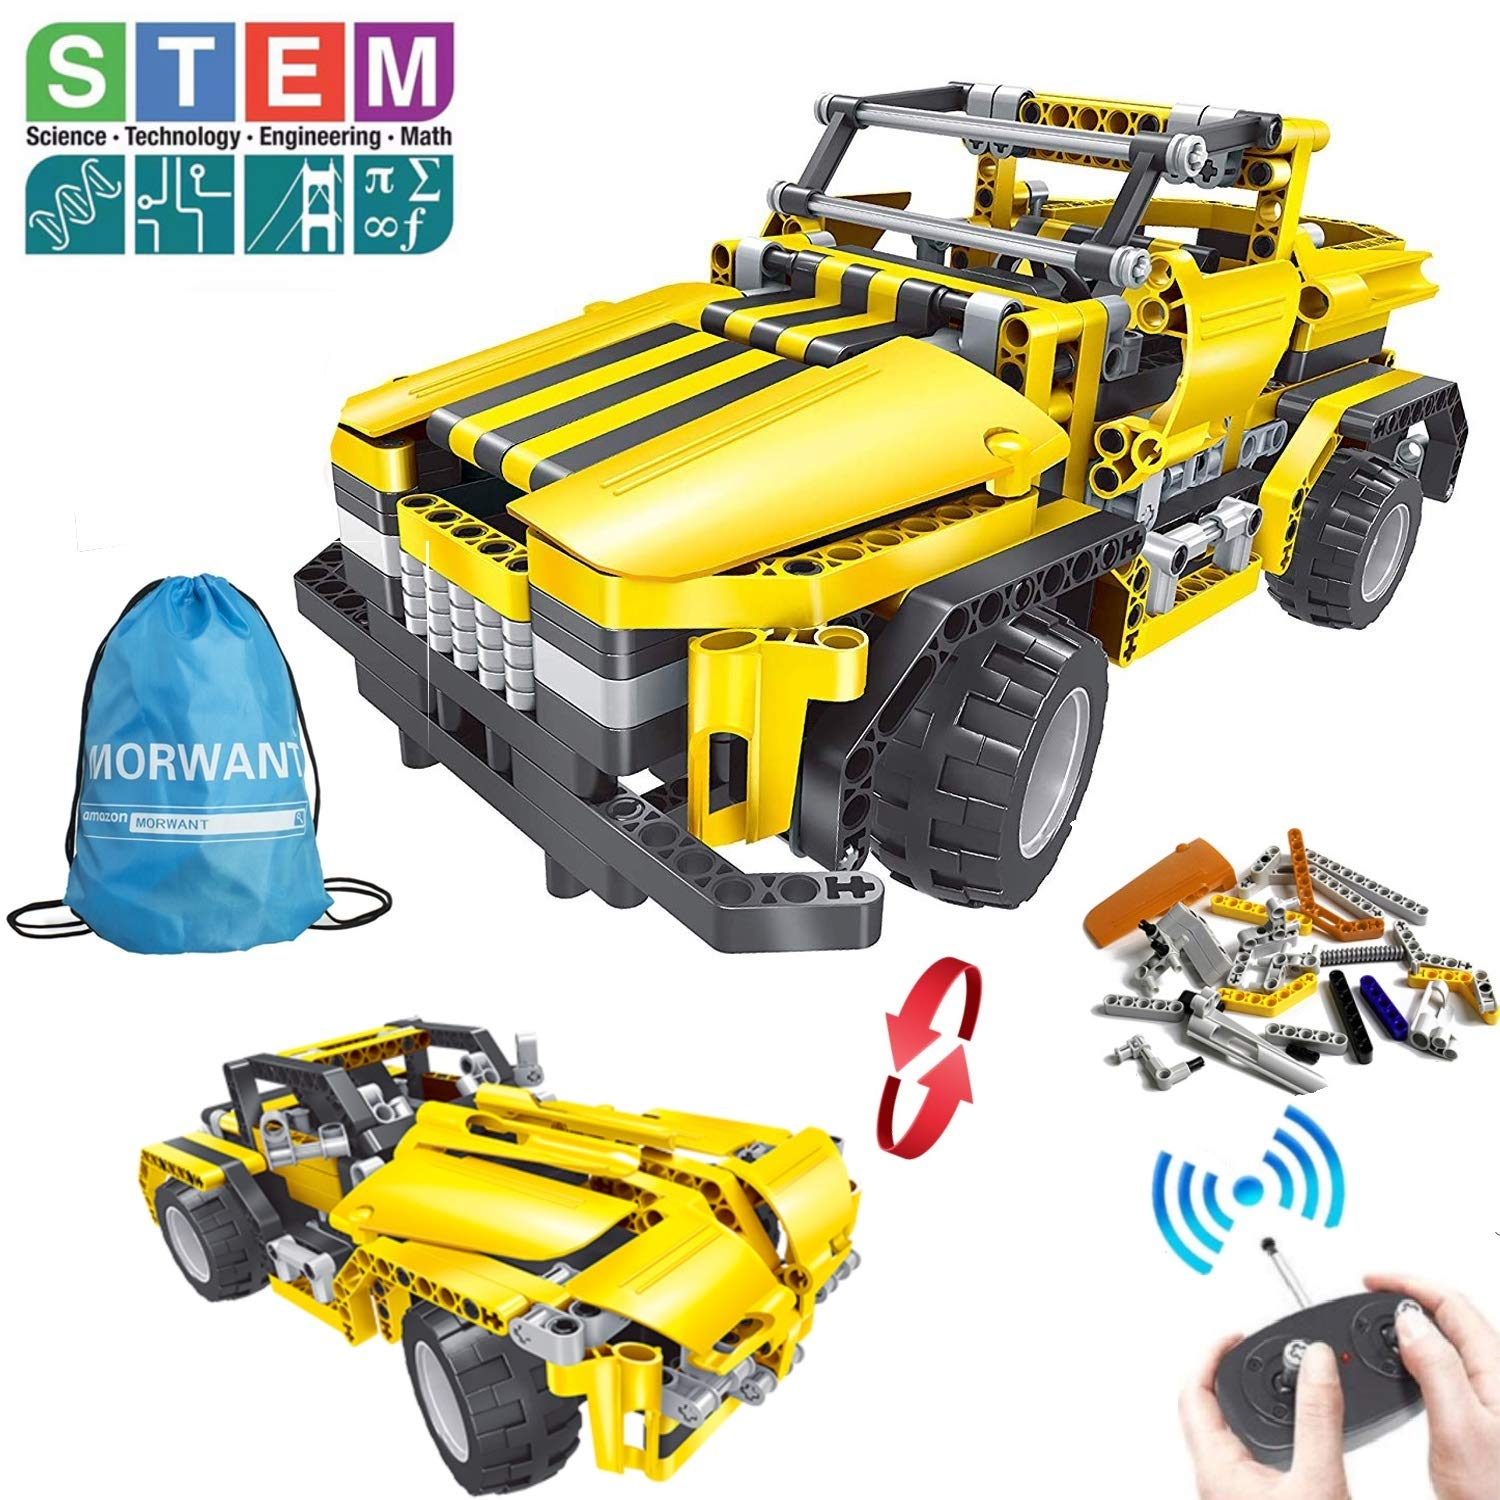 2-in-1 Remote Control Car Building Set | STEM Learning Kits for Boys and Girls 6-12 | Best Engineering Toy Gift for Kids Ages 7,8,9,14 Year Old (426pcs) - wiihuu